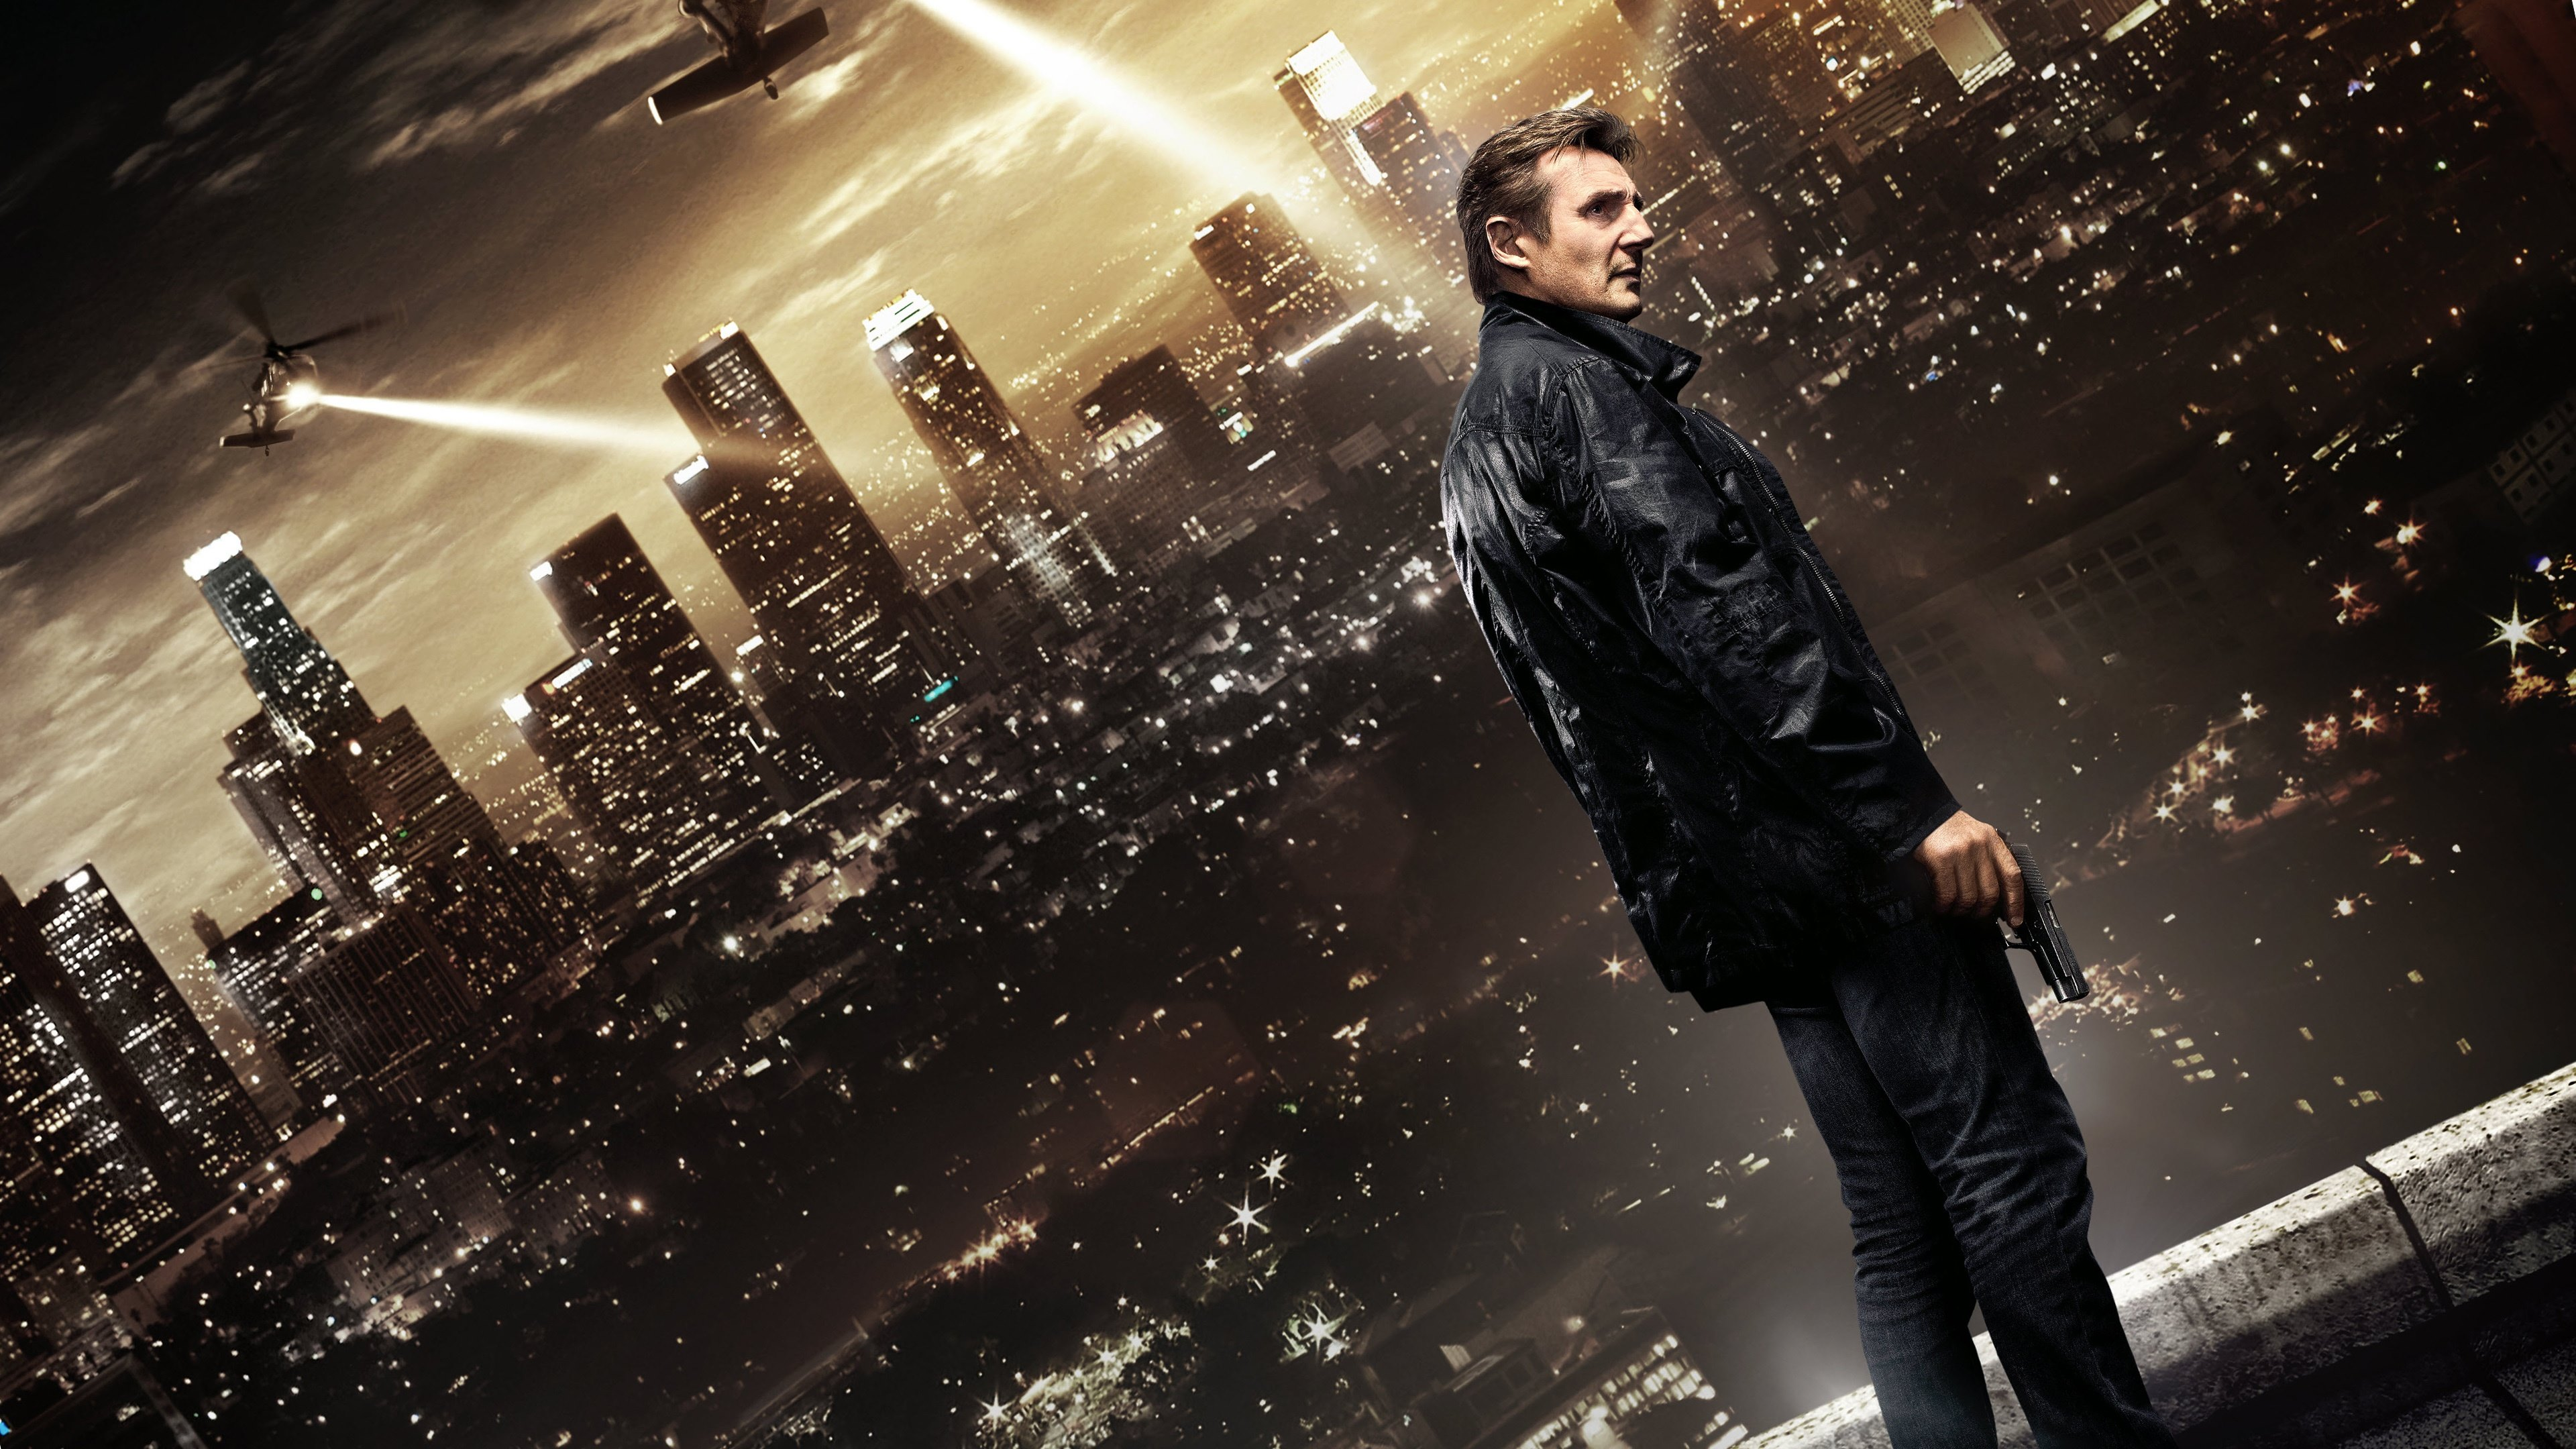 12 taken 3 hd wallpapers | background images - wallpaper abyss